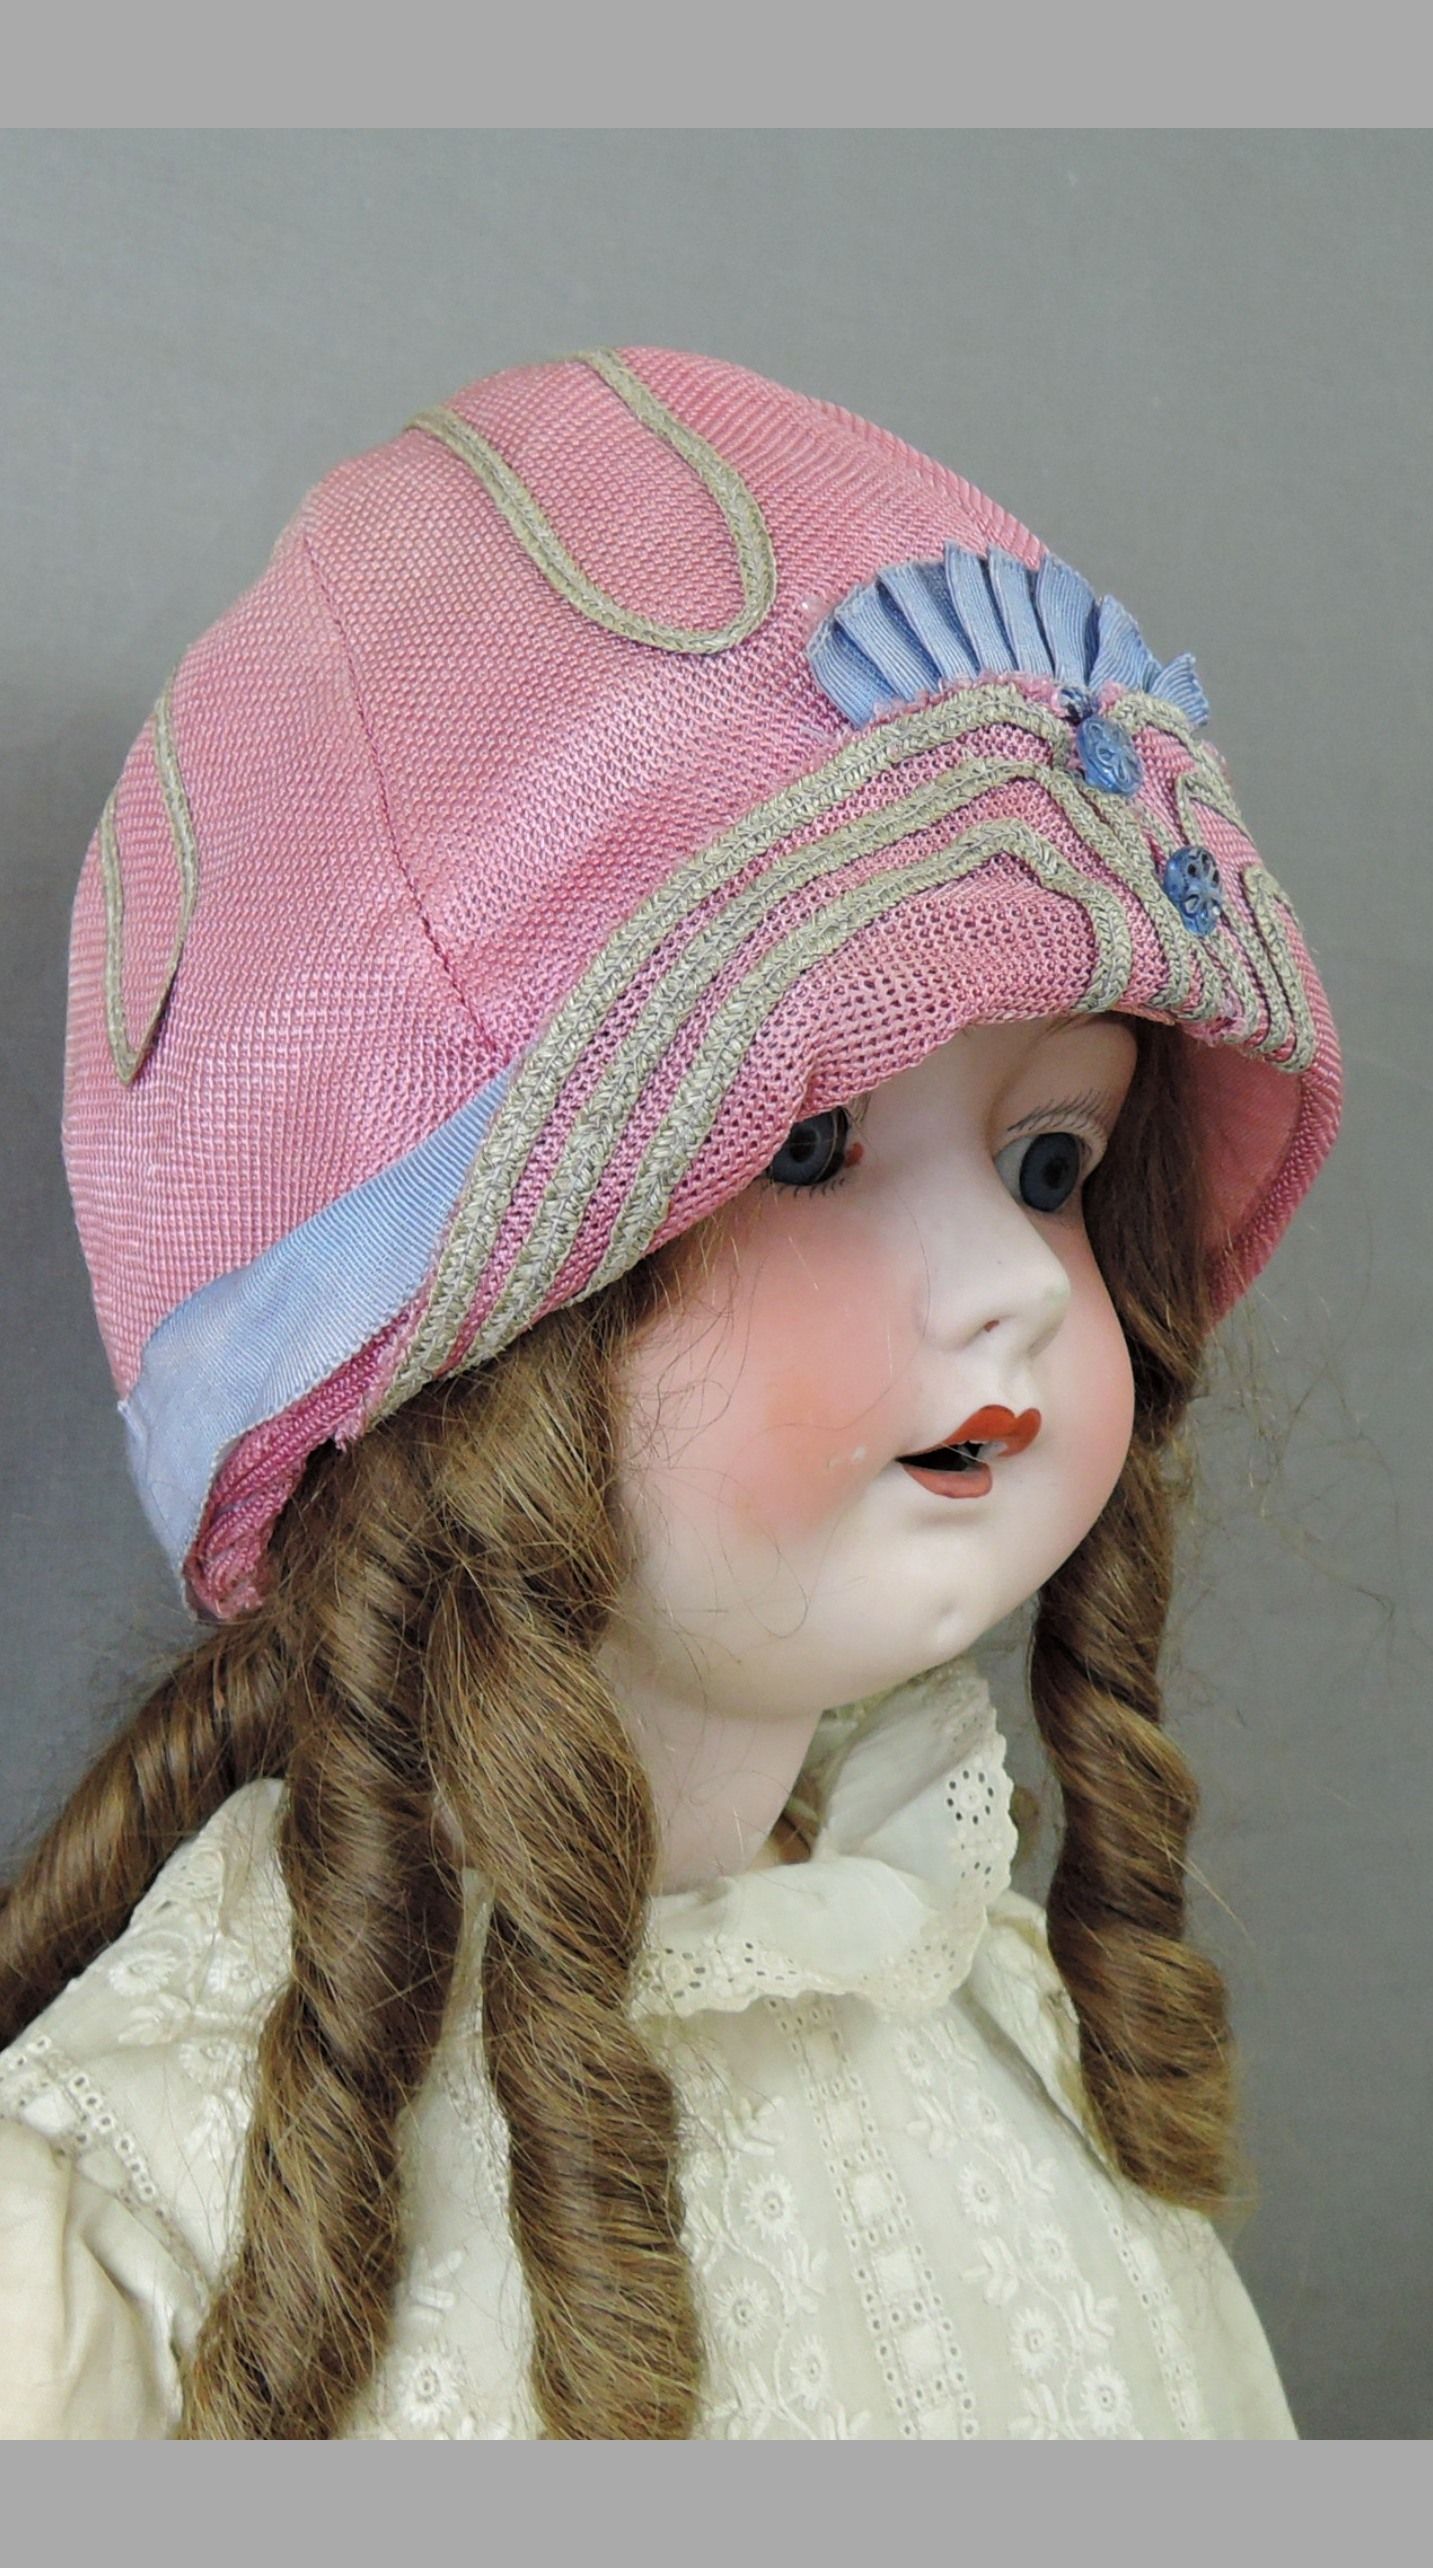 Vintage 1920s Little Girl Cloche Hat Pink Straw, with issues